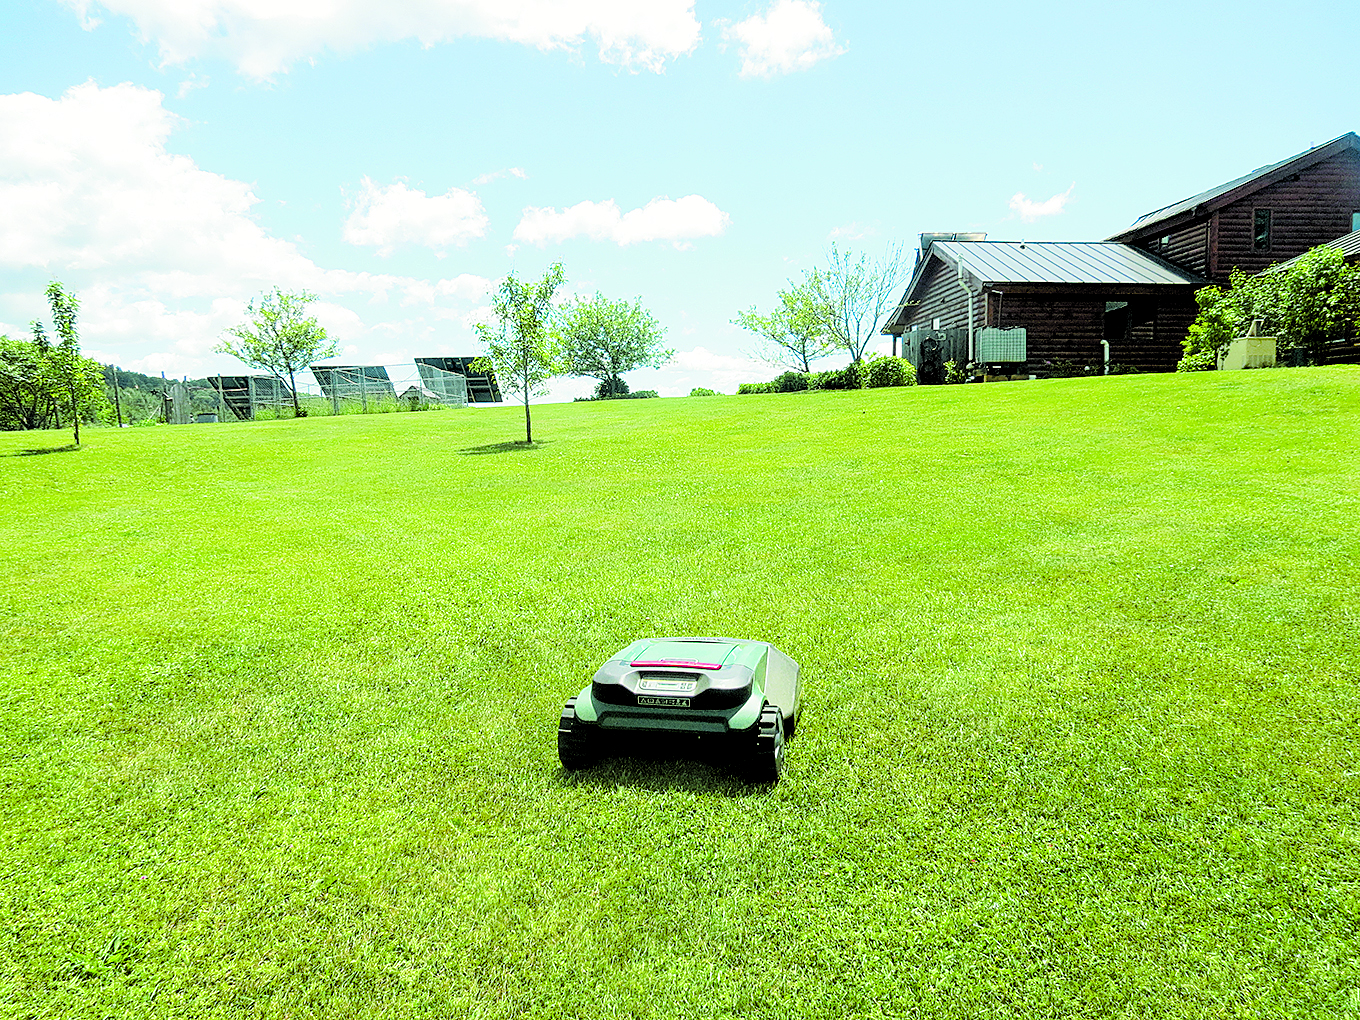 This lawn was a former cow pasture. No fertilizers, no seeding, and no ammendments, except the mowing. The owners have stopped mowing the lawn -- and let this robot mower keep it looking like a golf course. Photo: N. R. Mallery